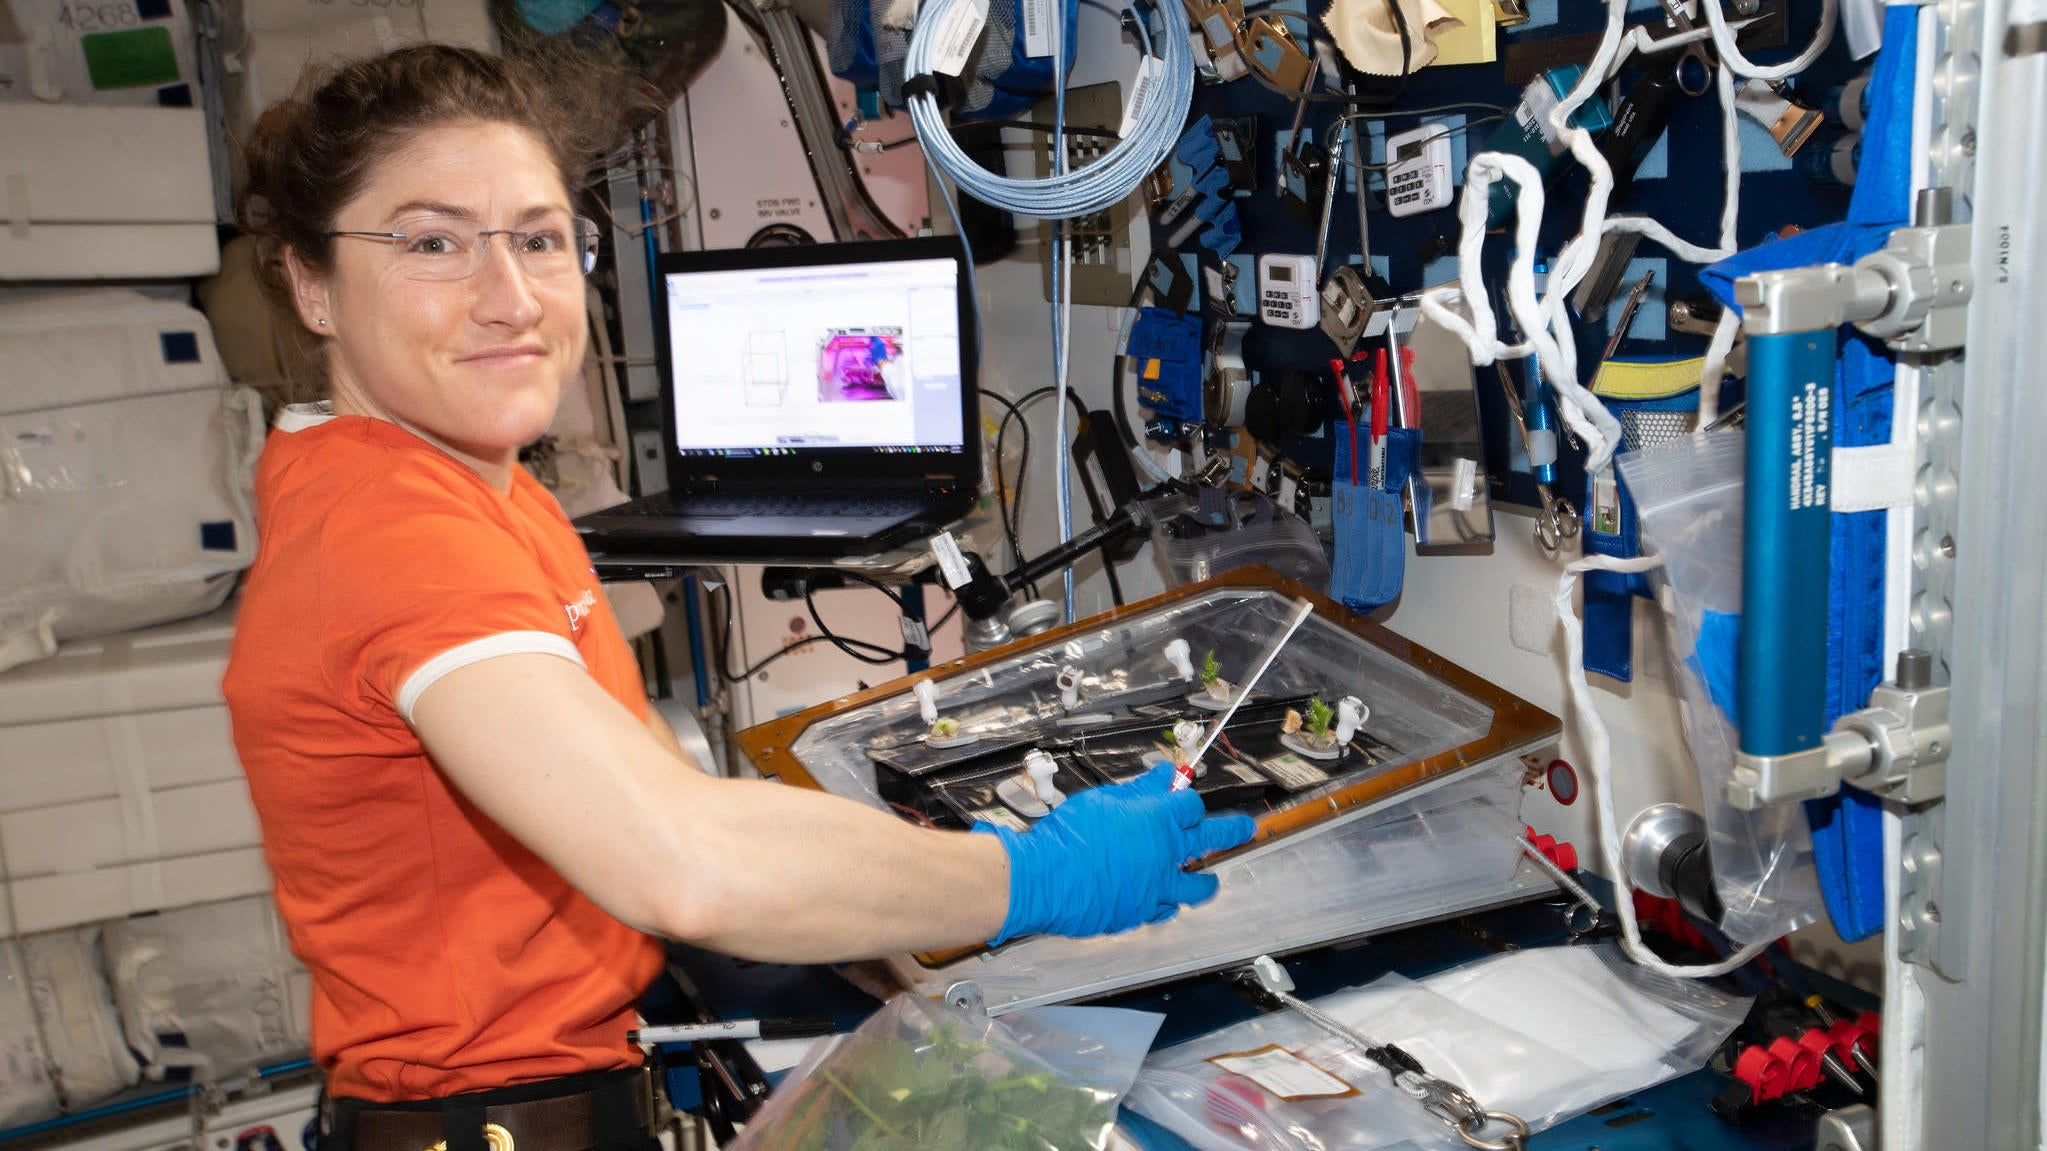 'It Feels Awesome': NASA Astronaut Learns She Will Spend Record-Breaking 328 Days In Space